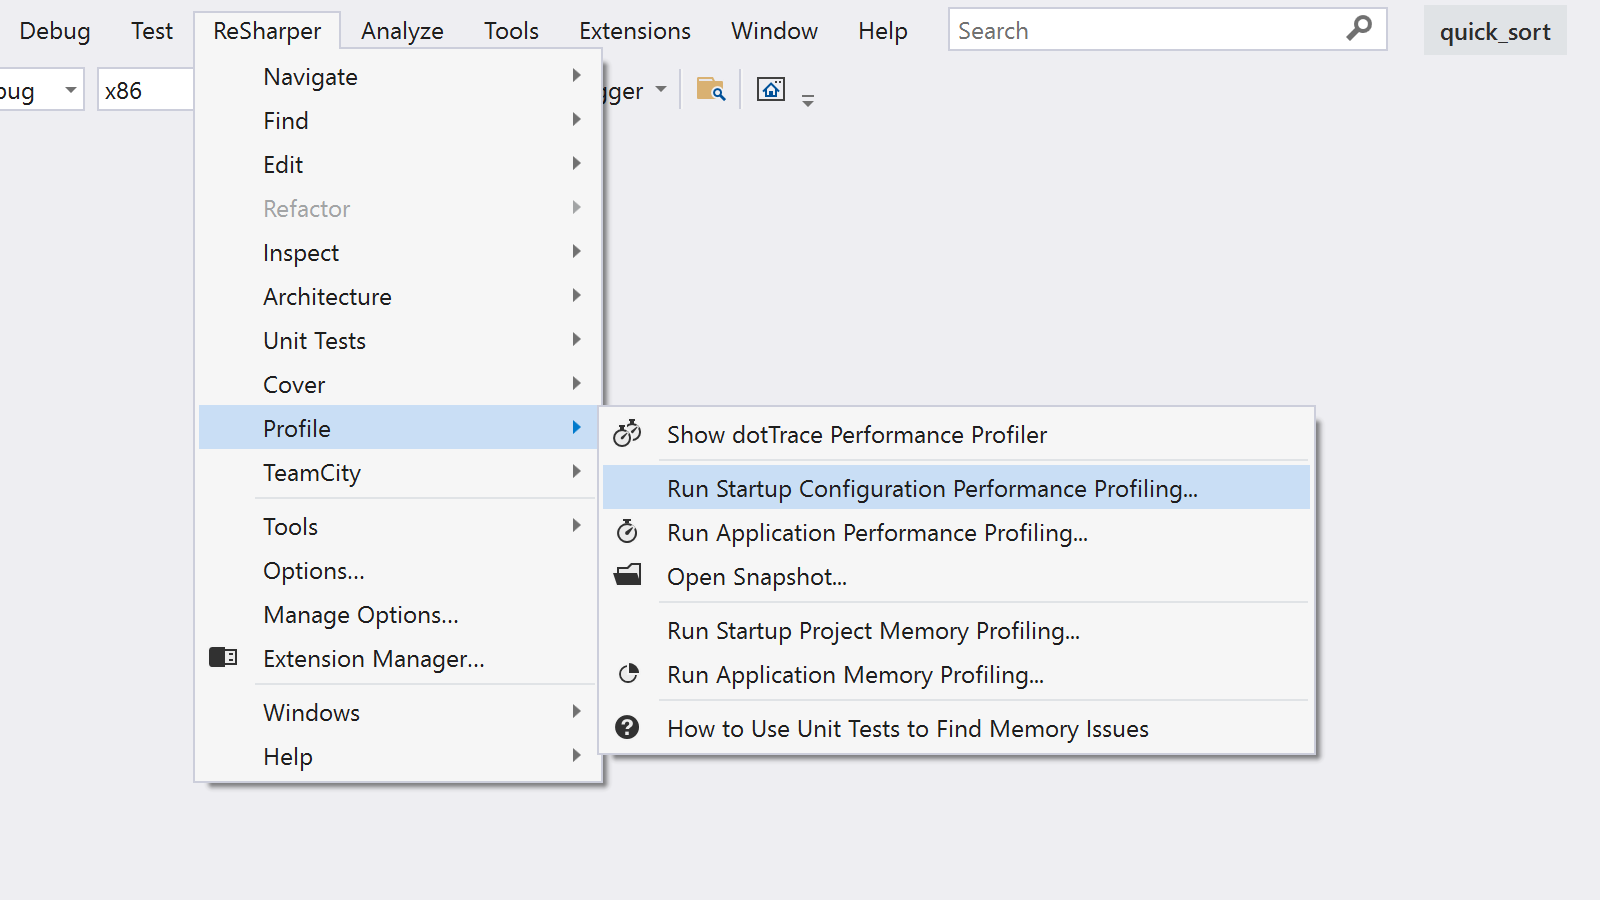 The ReSharper Profile menu allows running the start configuration with dotTrace profiling